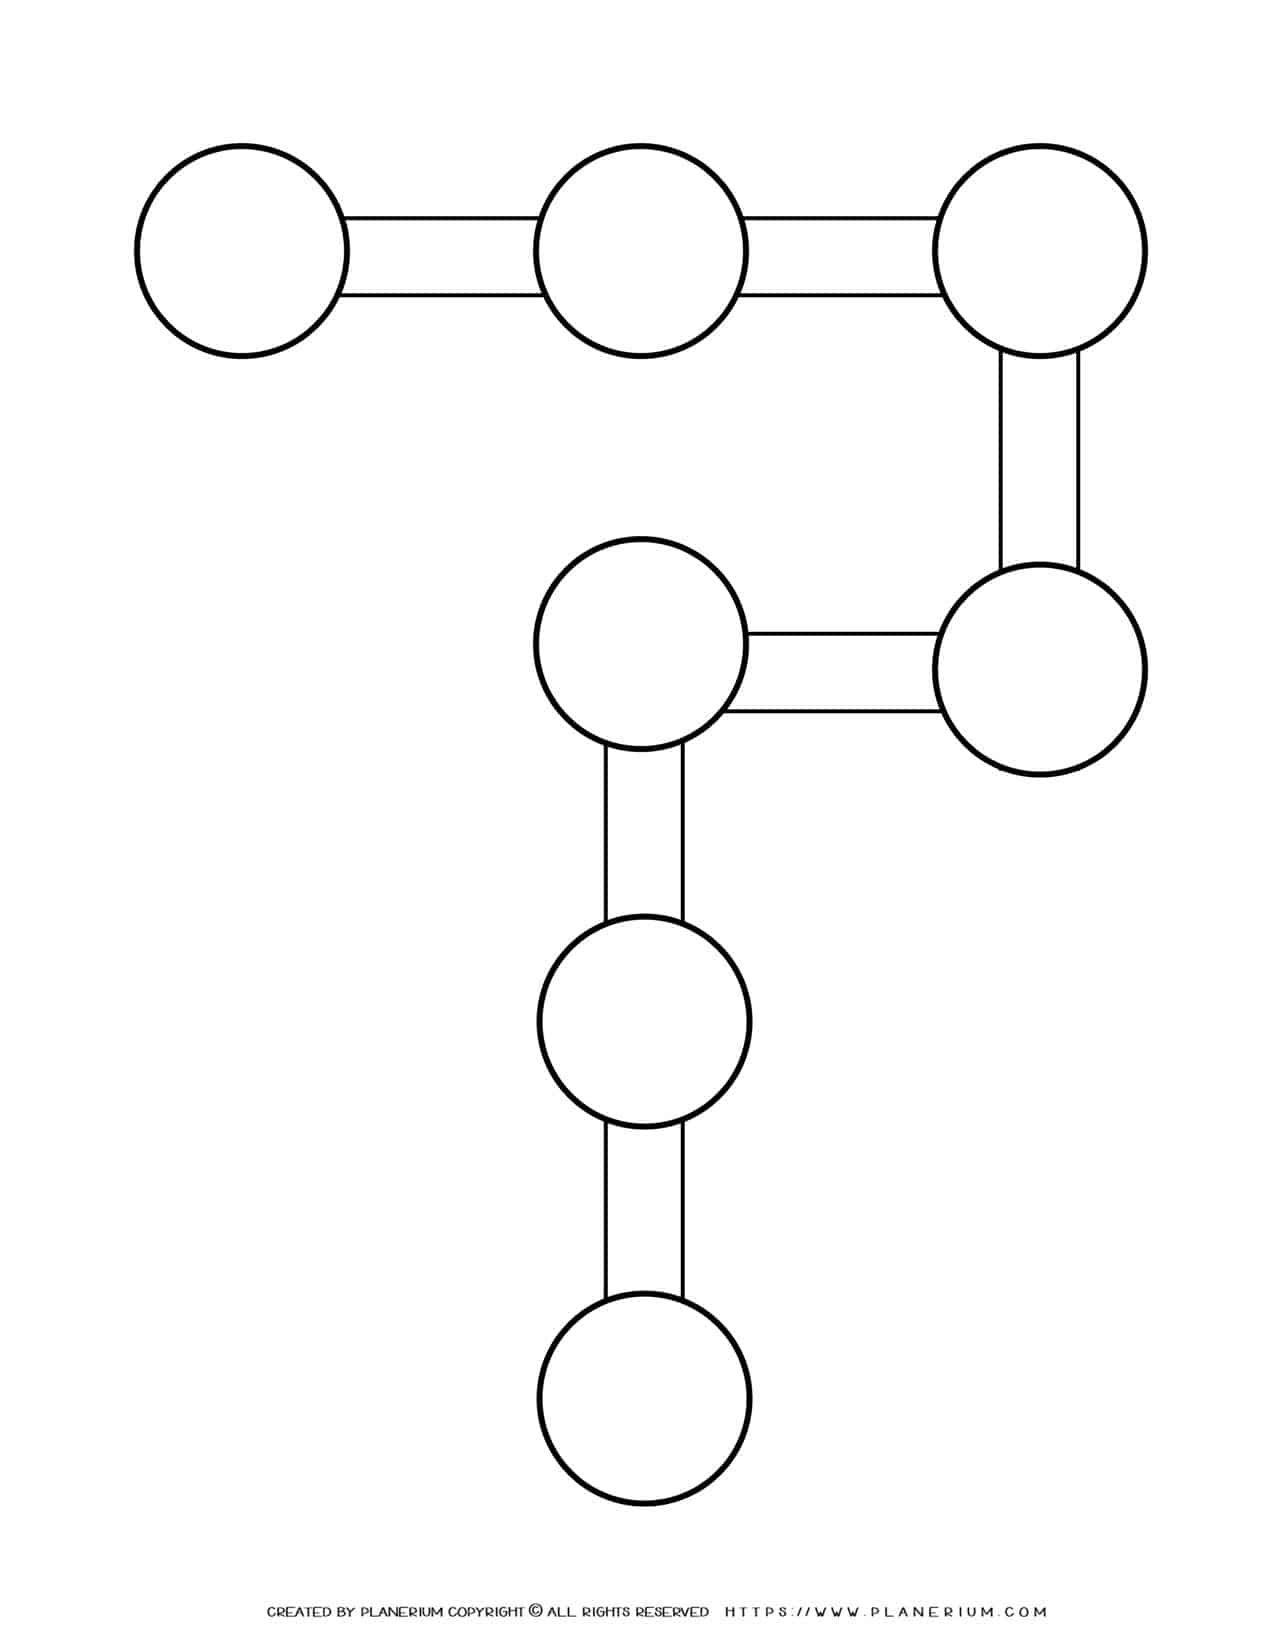 Sequence Chart Template - Seven Circles on P Shape | Planerium